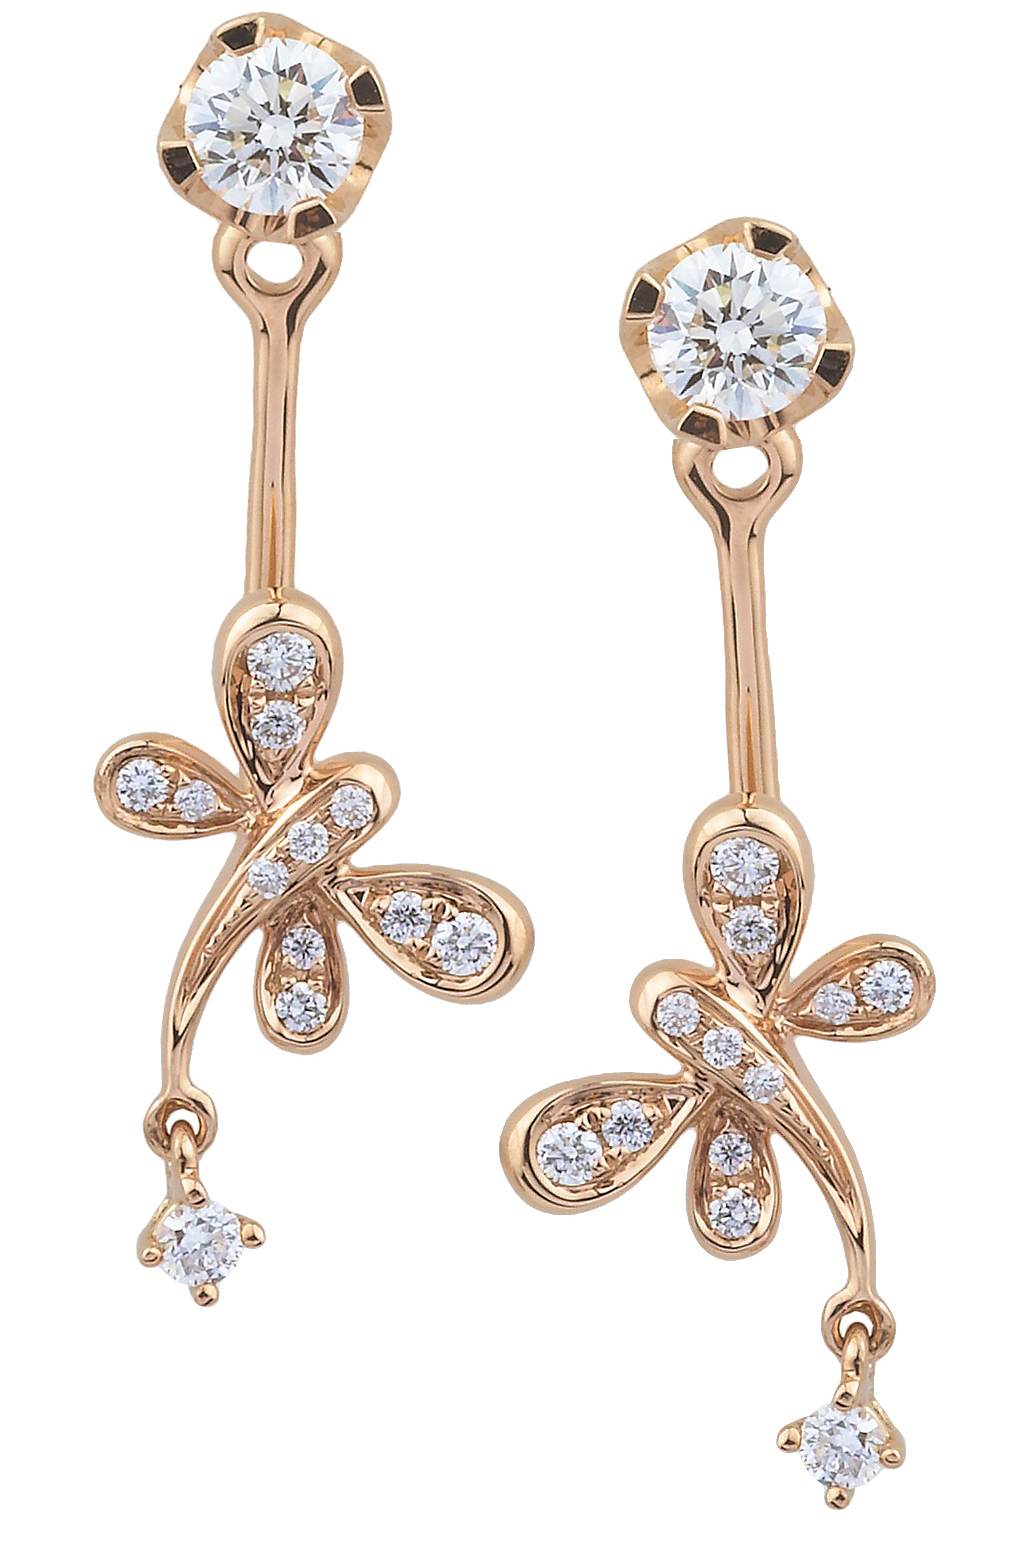 Supreme Jewelry dragonfly earrings | JCK On Your Market